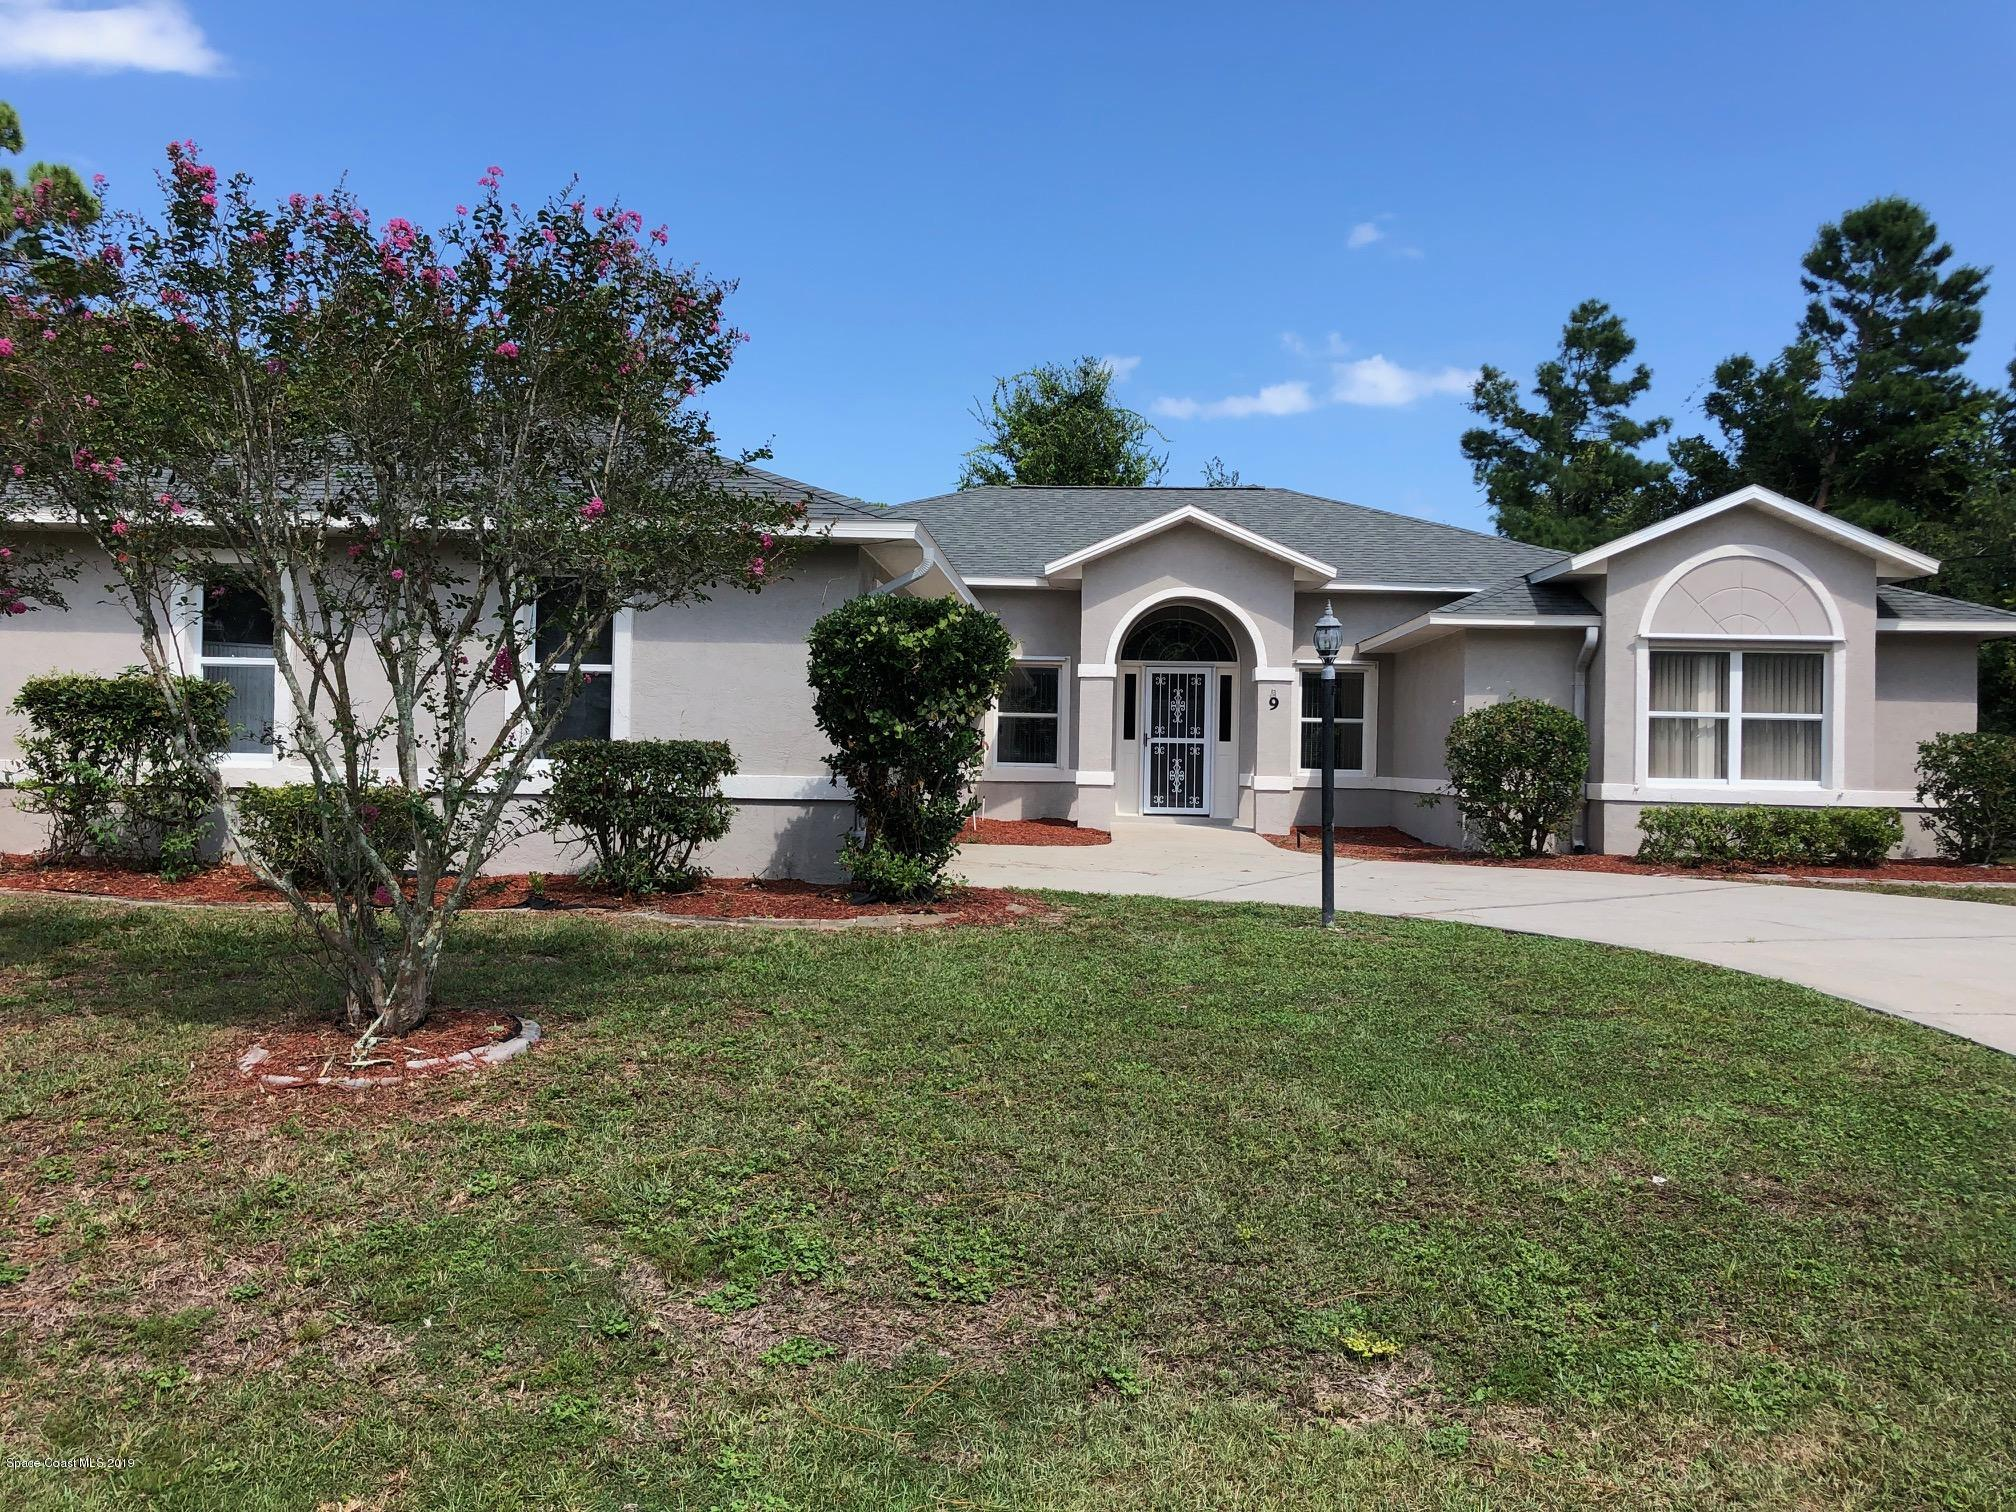 Single Family Homes for Rent at 9 Fallwood Other Areas, Florida 99999 United States